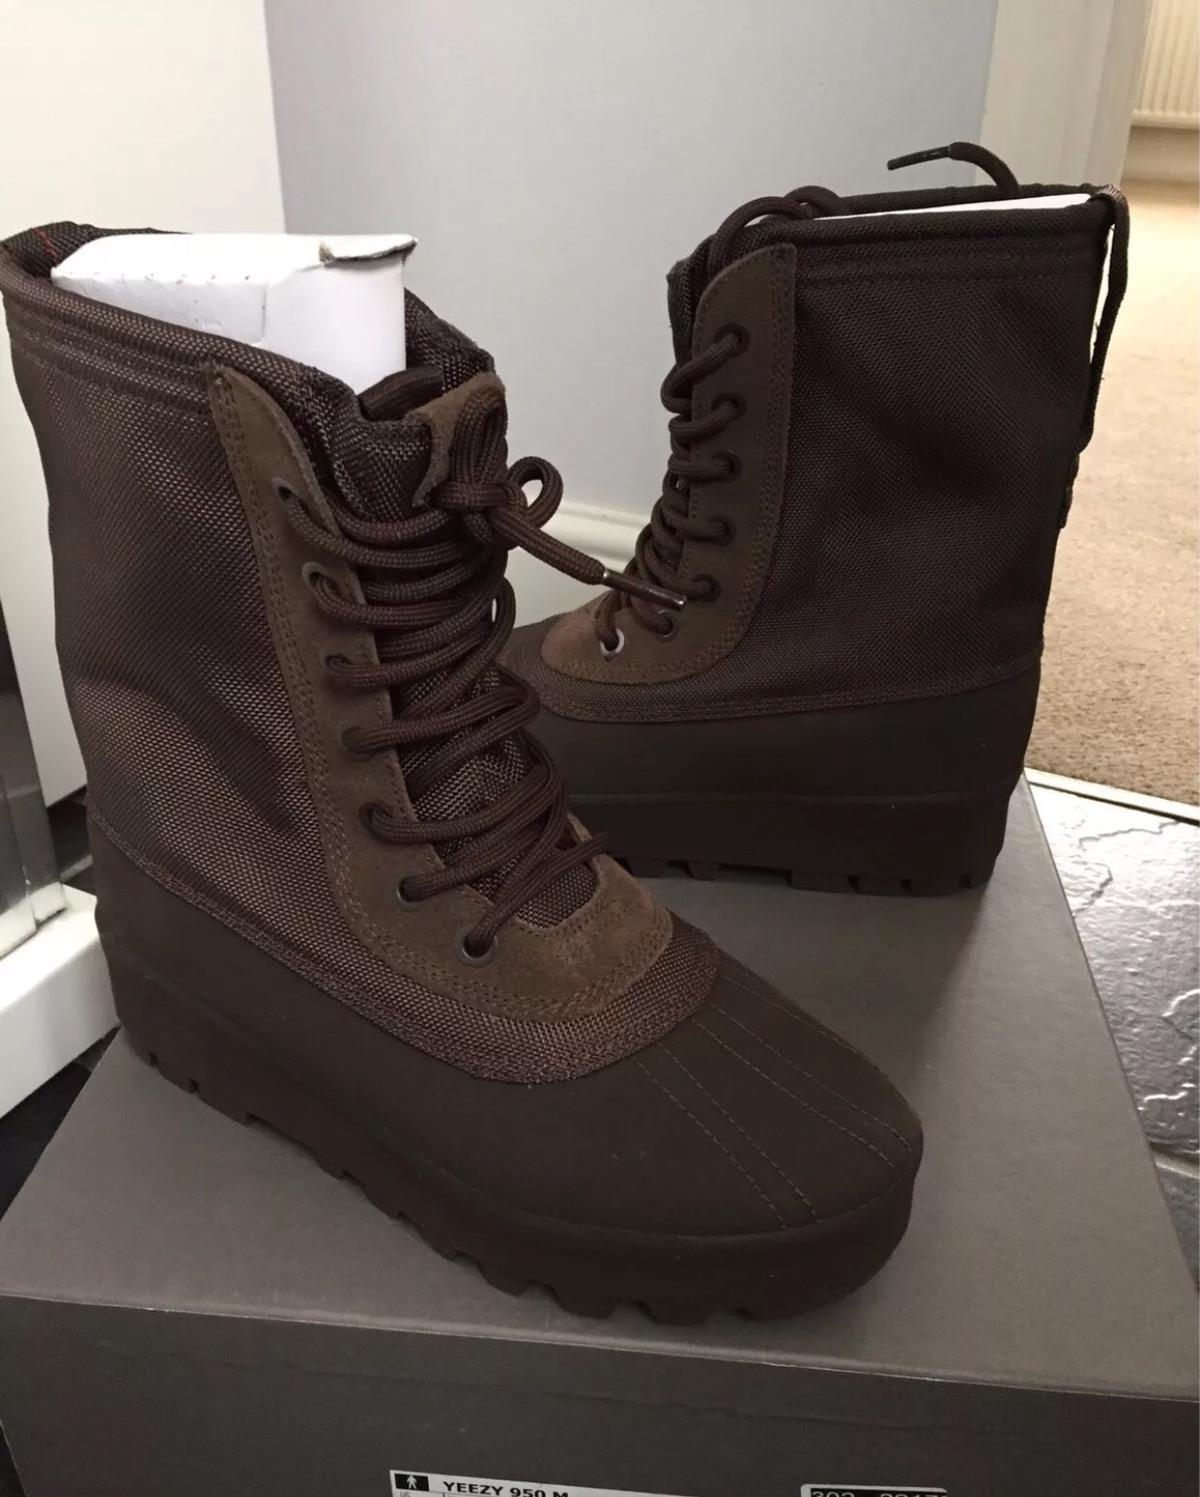 check out 4a062 e8d06 ADIDAS YEEZY 950 M BOOTS BROWN KANYE TRAINERS in KT2 London ...